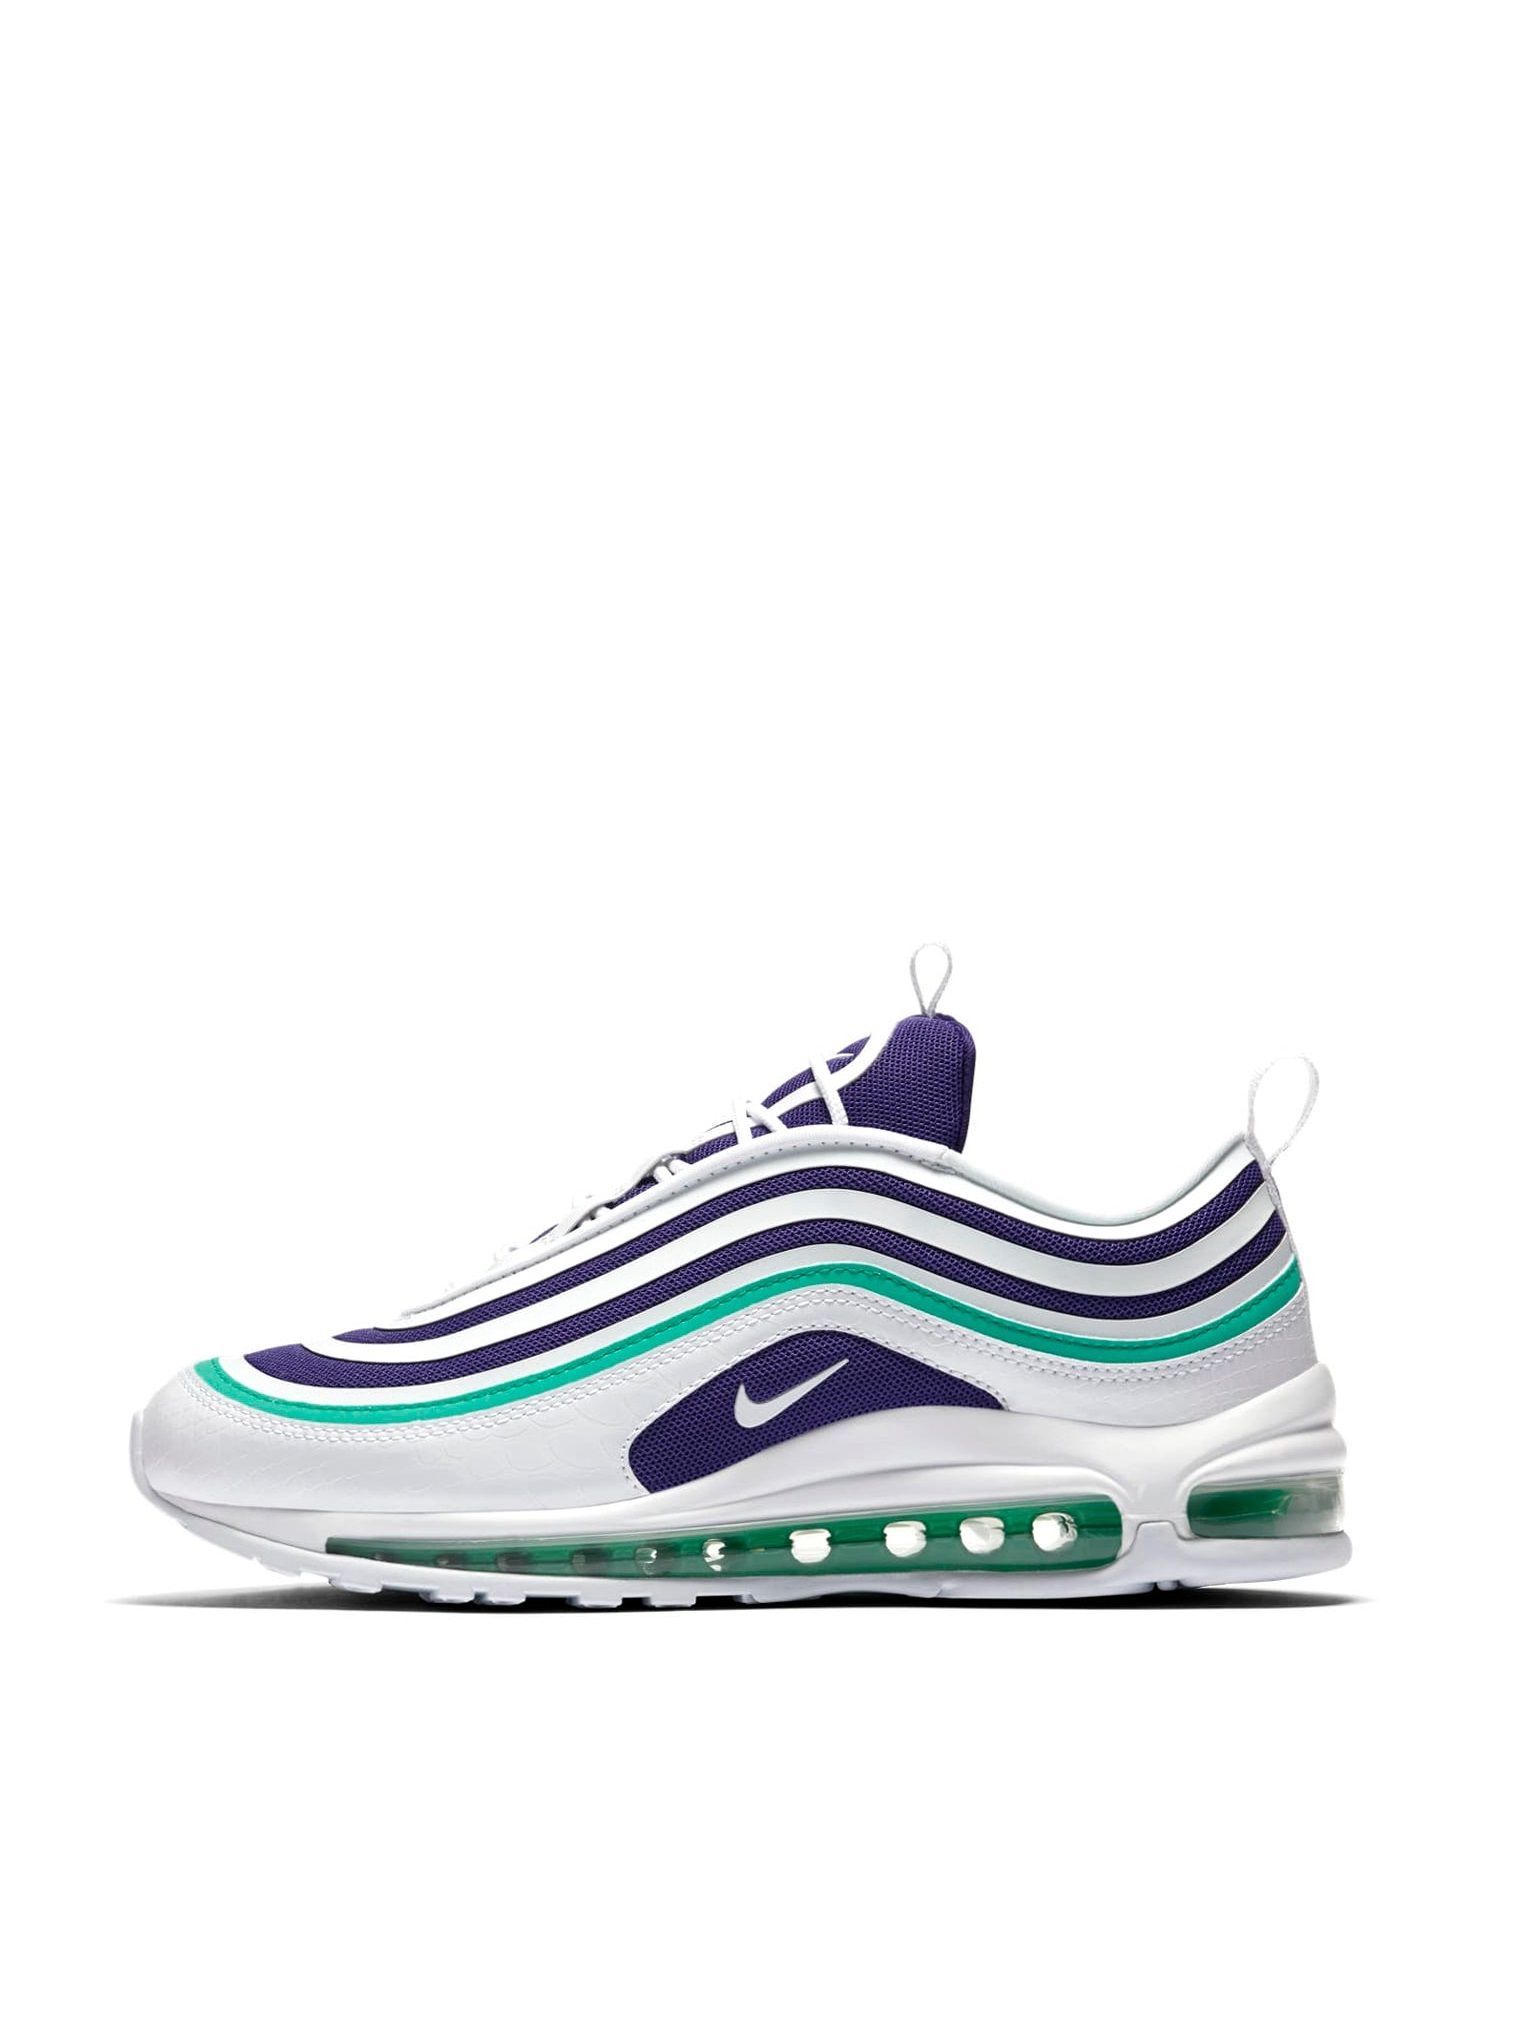 air max 97 grape